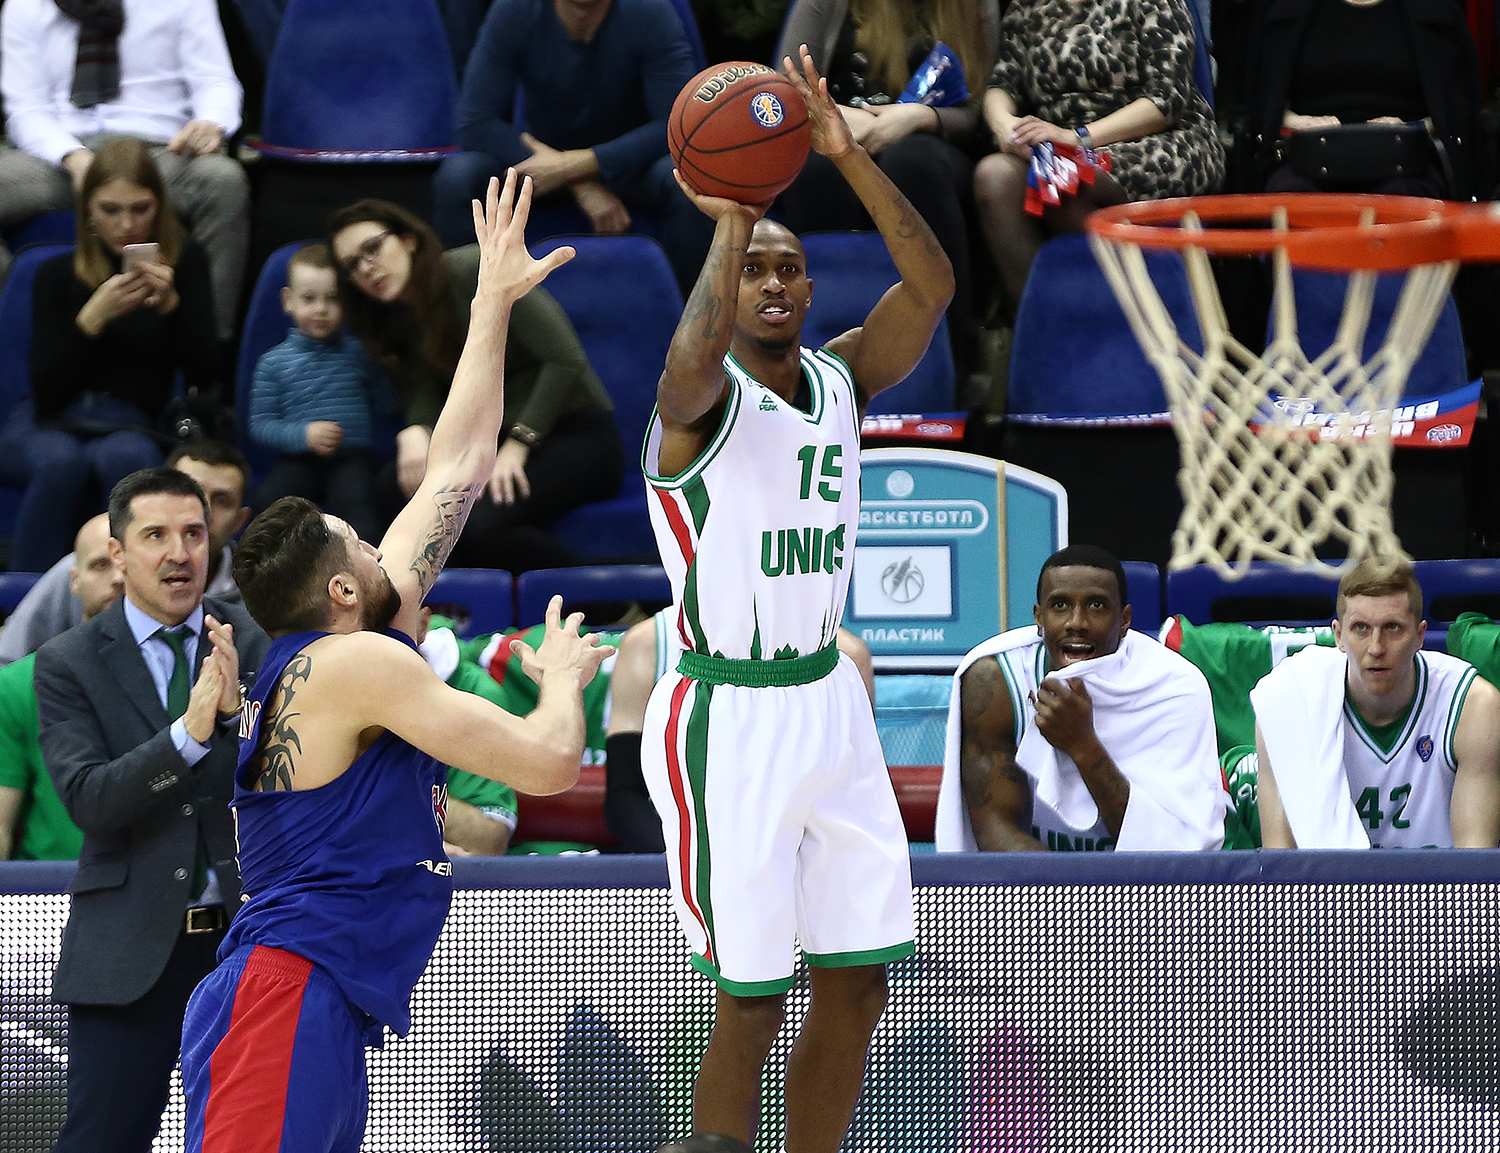 UNICS Puts CSKA Away, Sets Sights On 1st Place